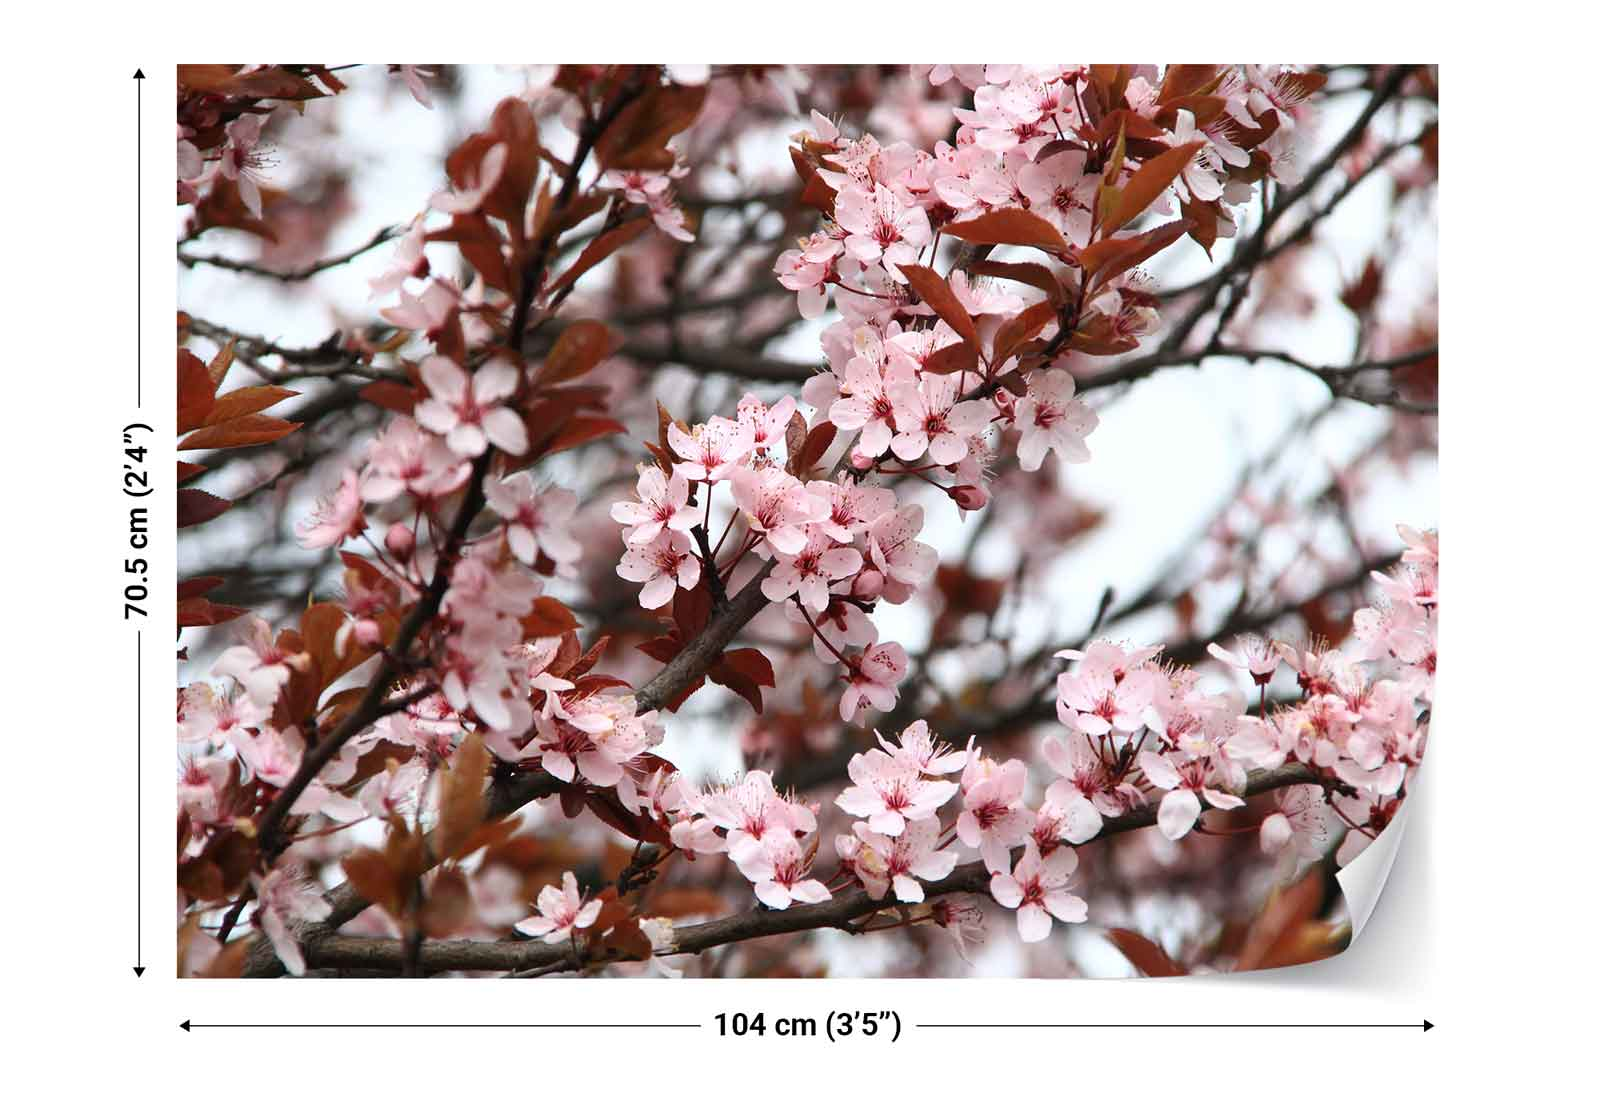 Cherry blossoms pink photo wallpaper wall mural fw 1043 for Cherry blossom wallpaper mural